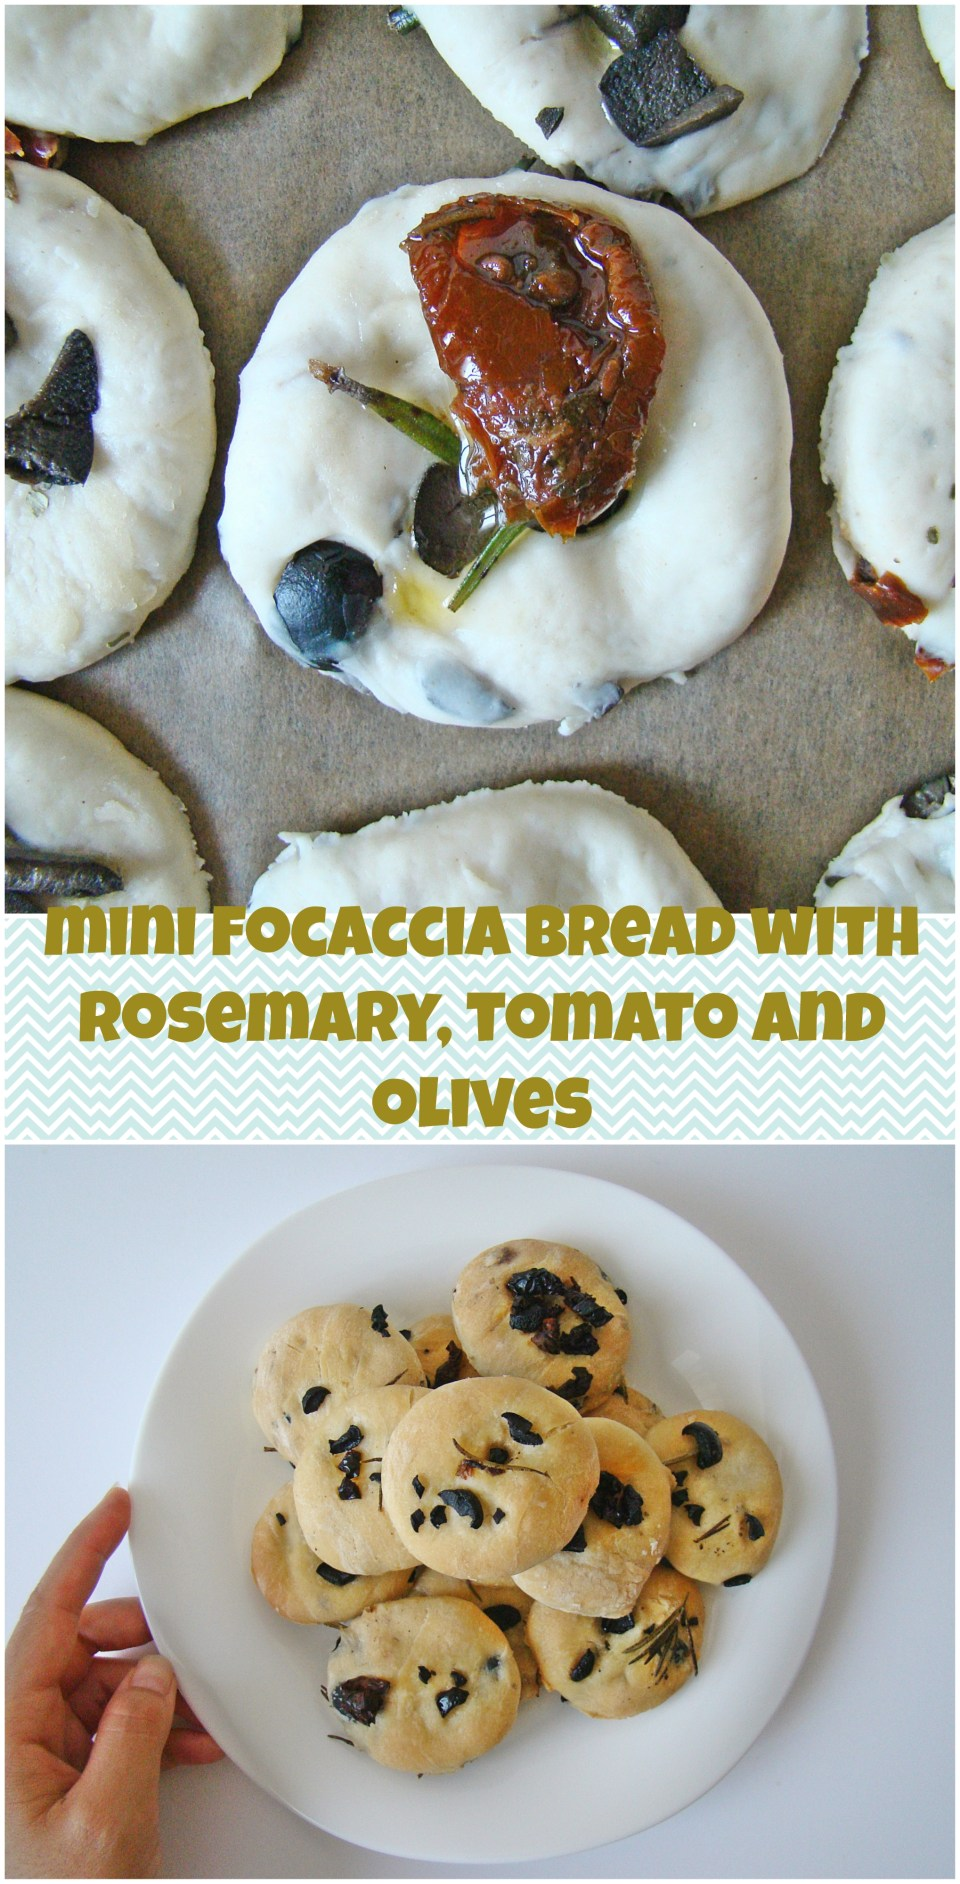 mini-focaccia-bread-with-rosemary-tomato-and-olives